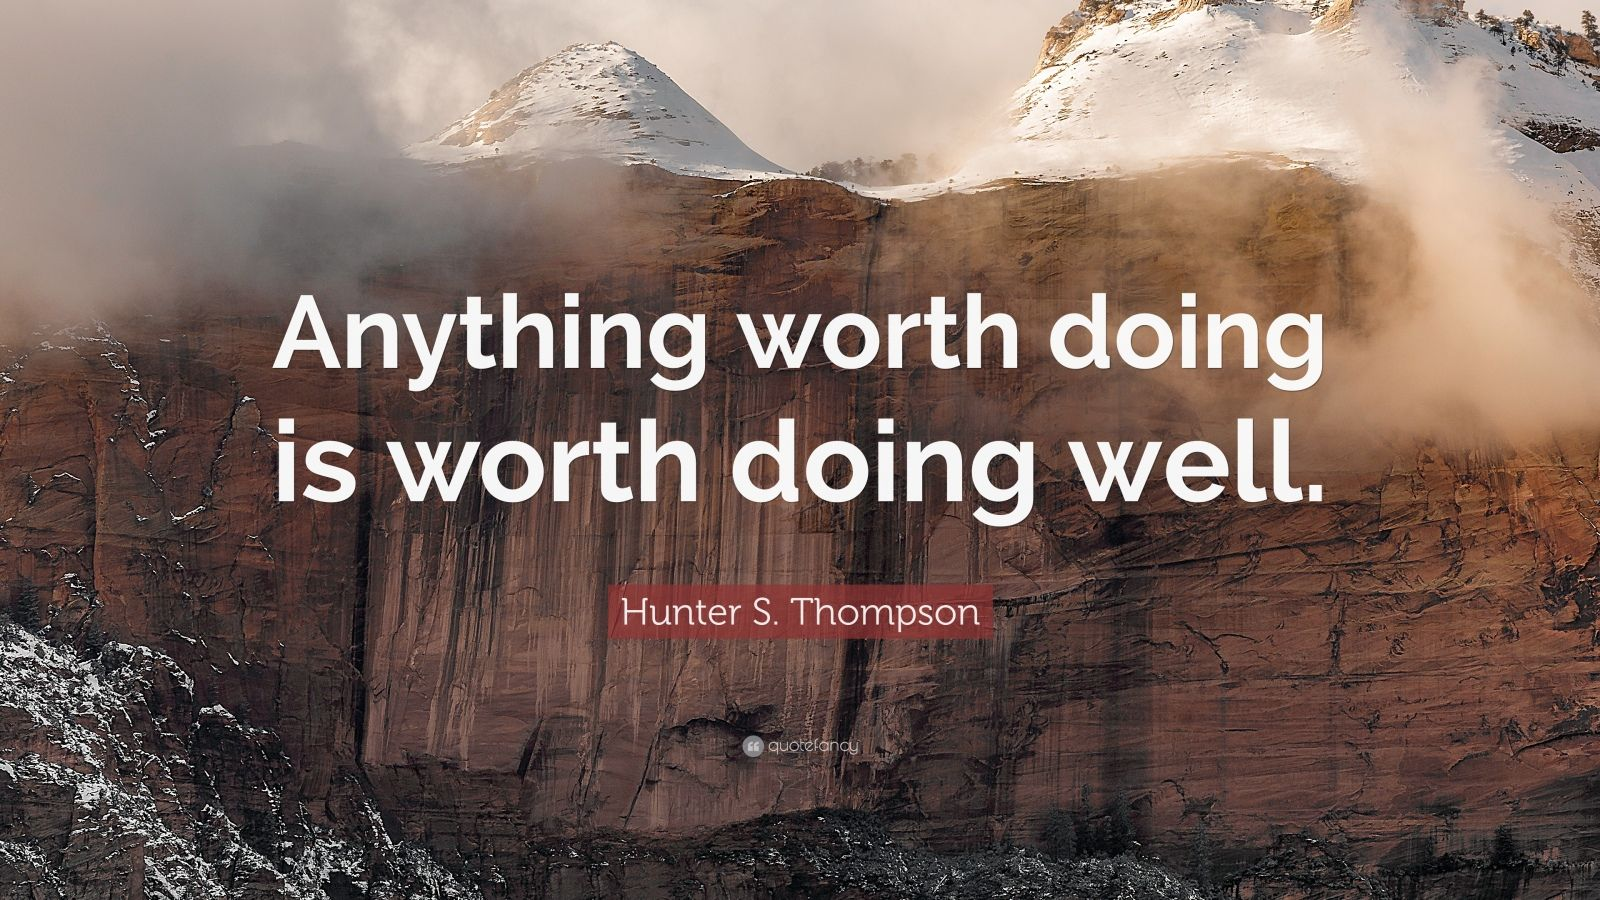 Business Success Quotes Wallpaper Hunter S Thompson Quote Anything Worth Doing Is Worth